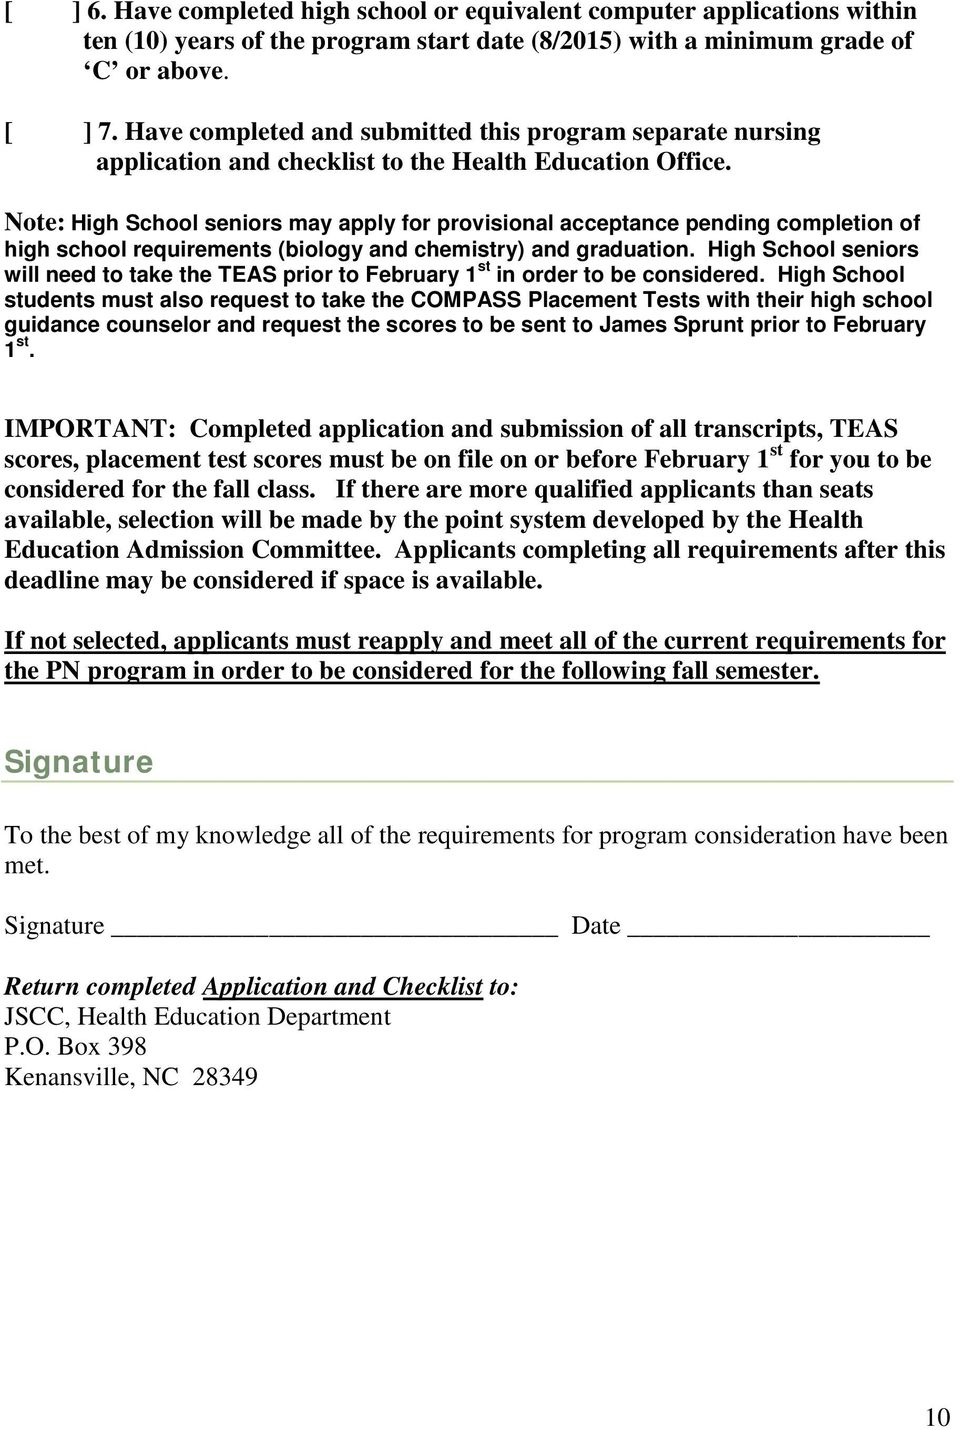 Note: High School seniors may apply for provisional acceptance pending completion of high school requirements (biology and chemistry) and graduation.